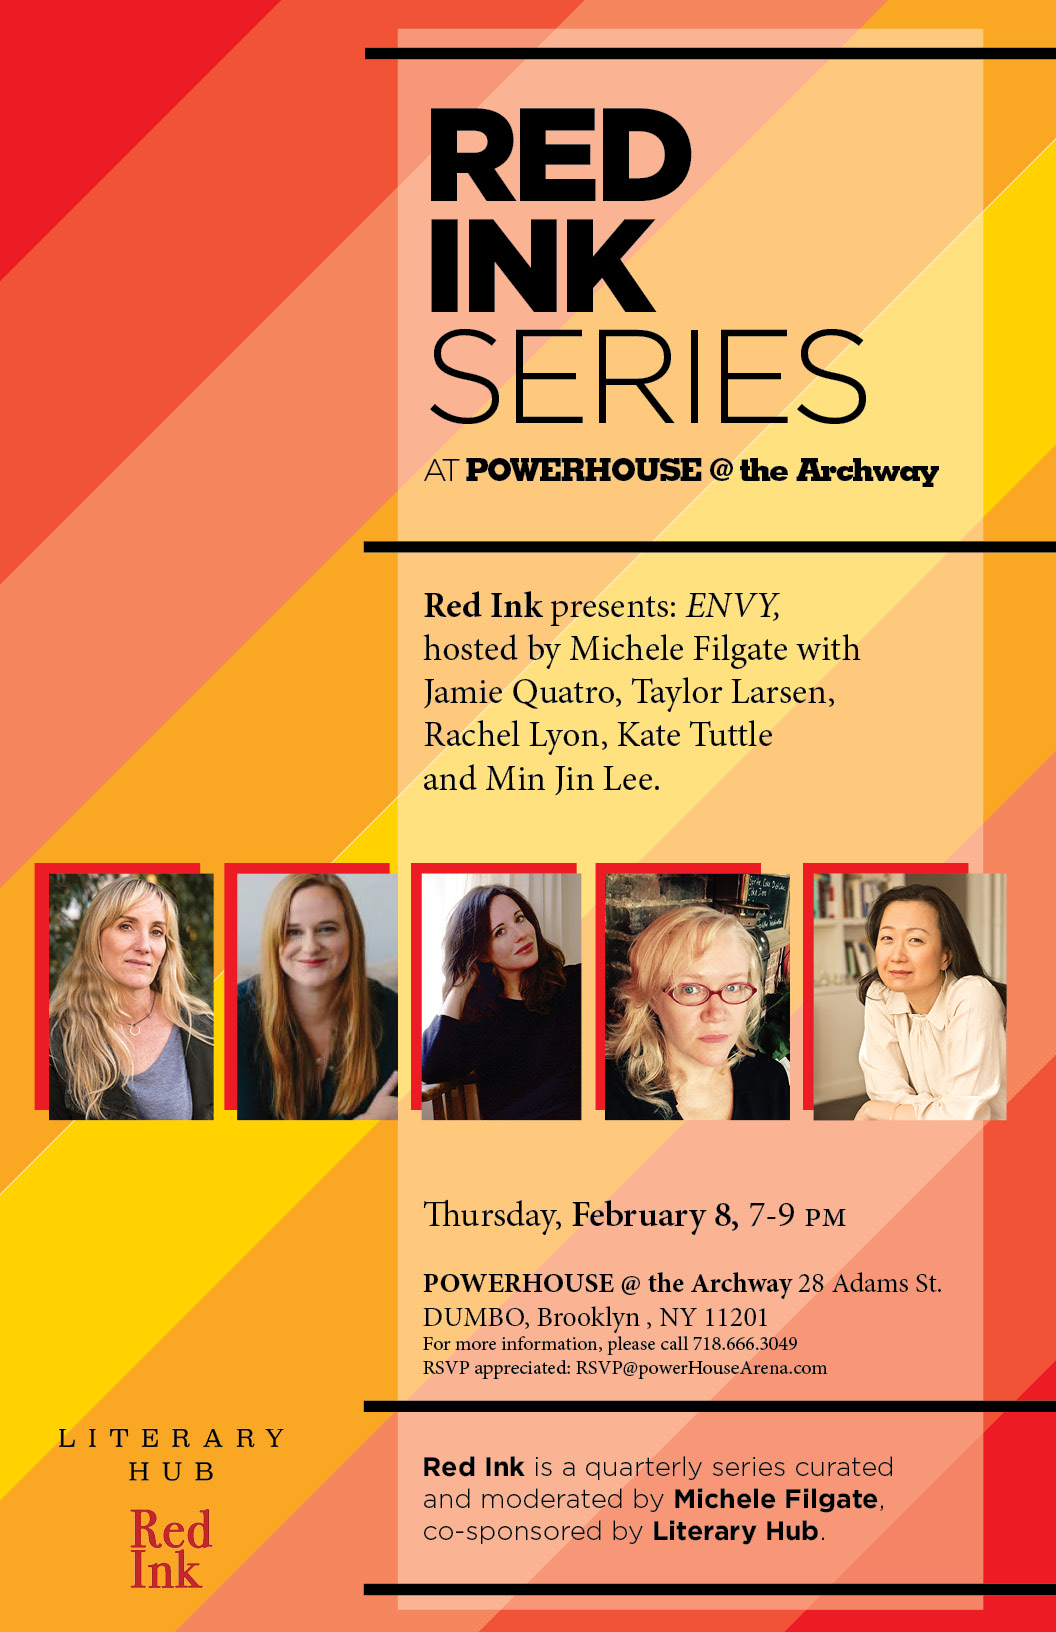 Red Ink Series: ENVY, hosted by Michele Filgate with Jamie Quatro, Taylor Larsen, Rachel Lyon, Kate Tuttle & Min Jin Lee